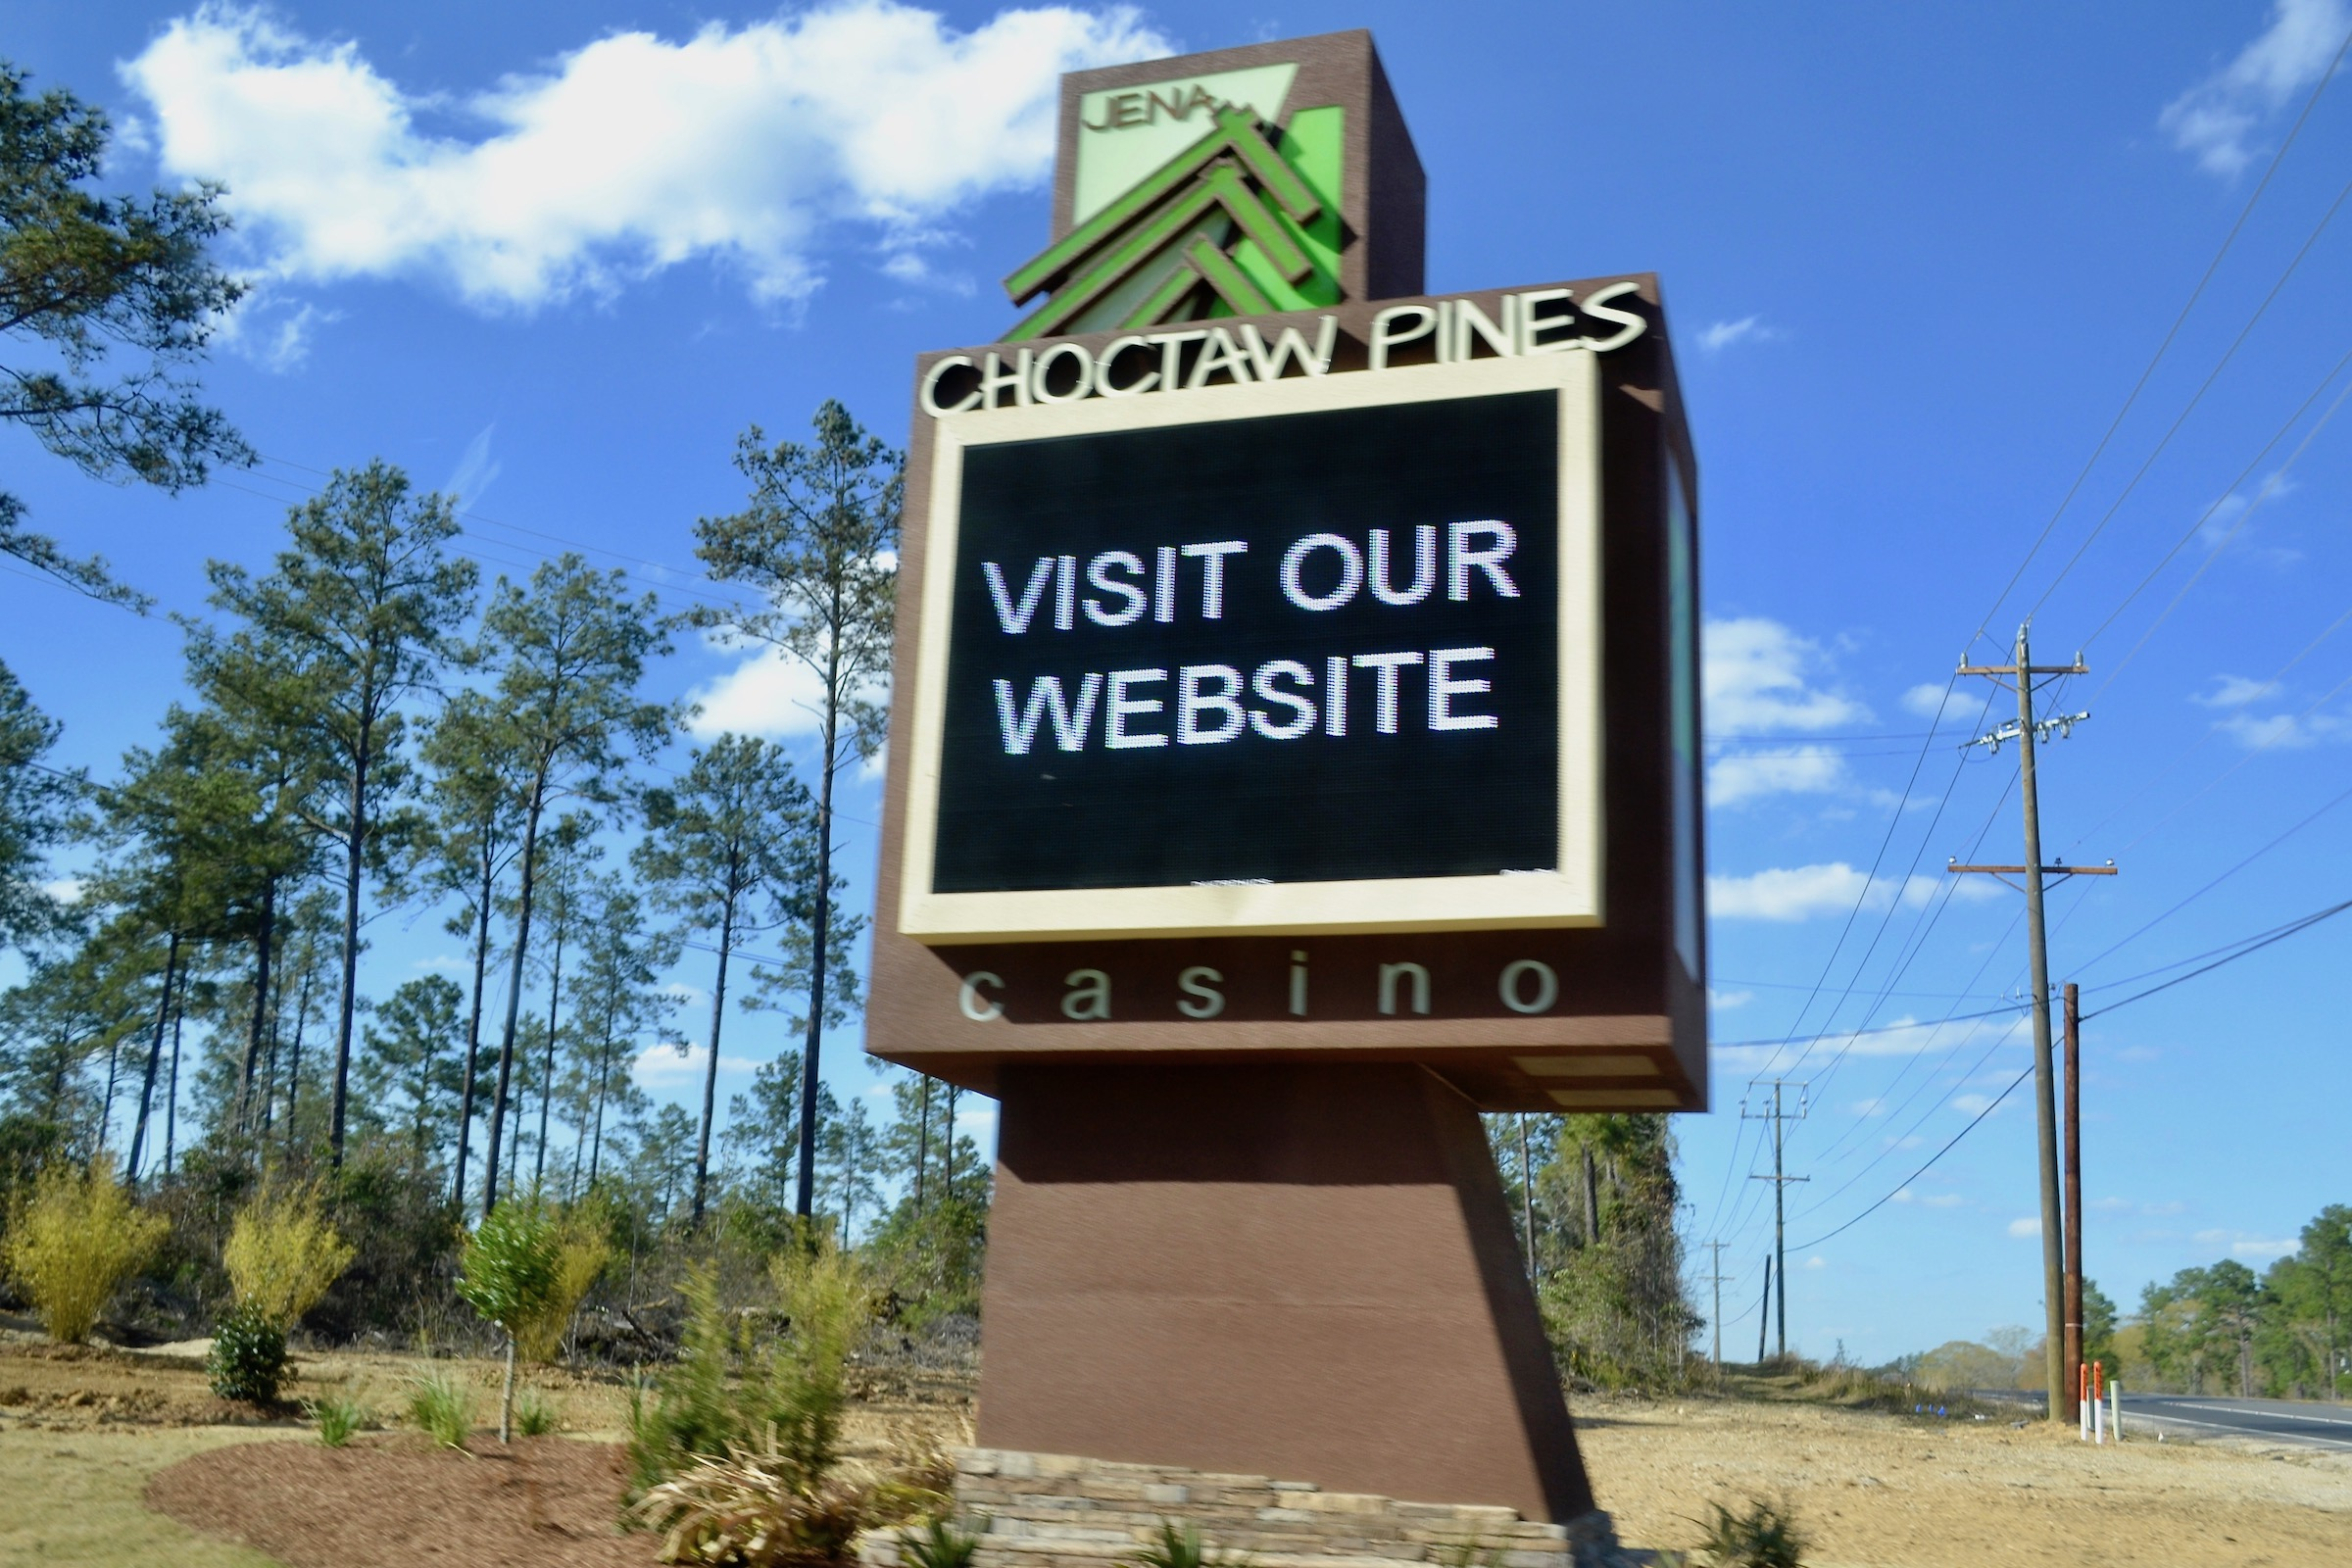 Jena Band of Choctaw Indians secures funding for casino hotel